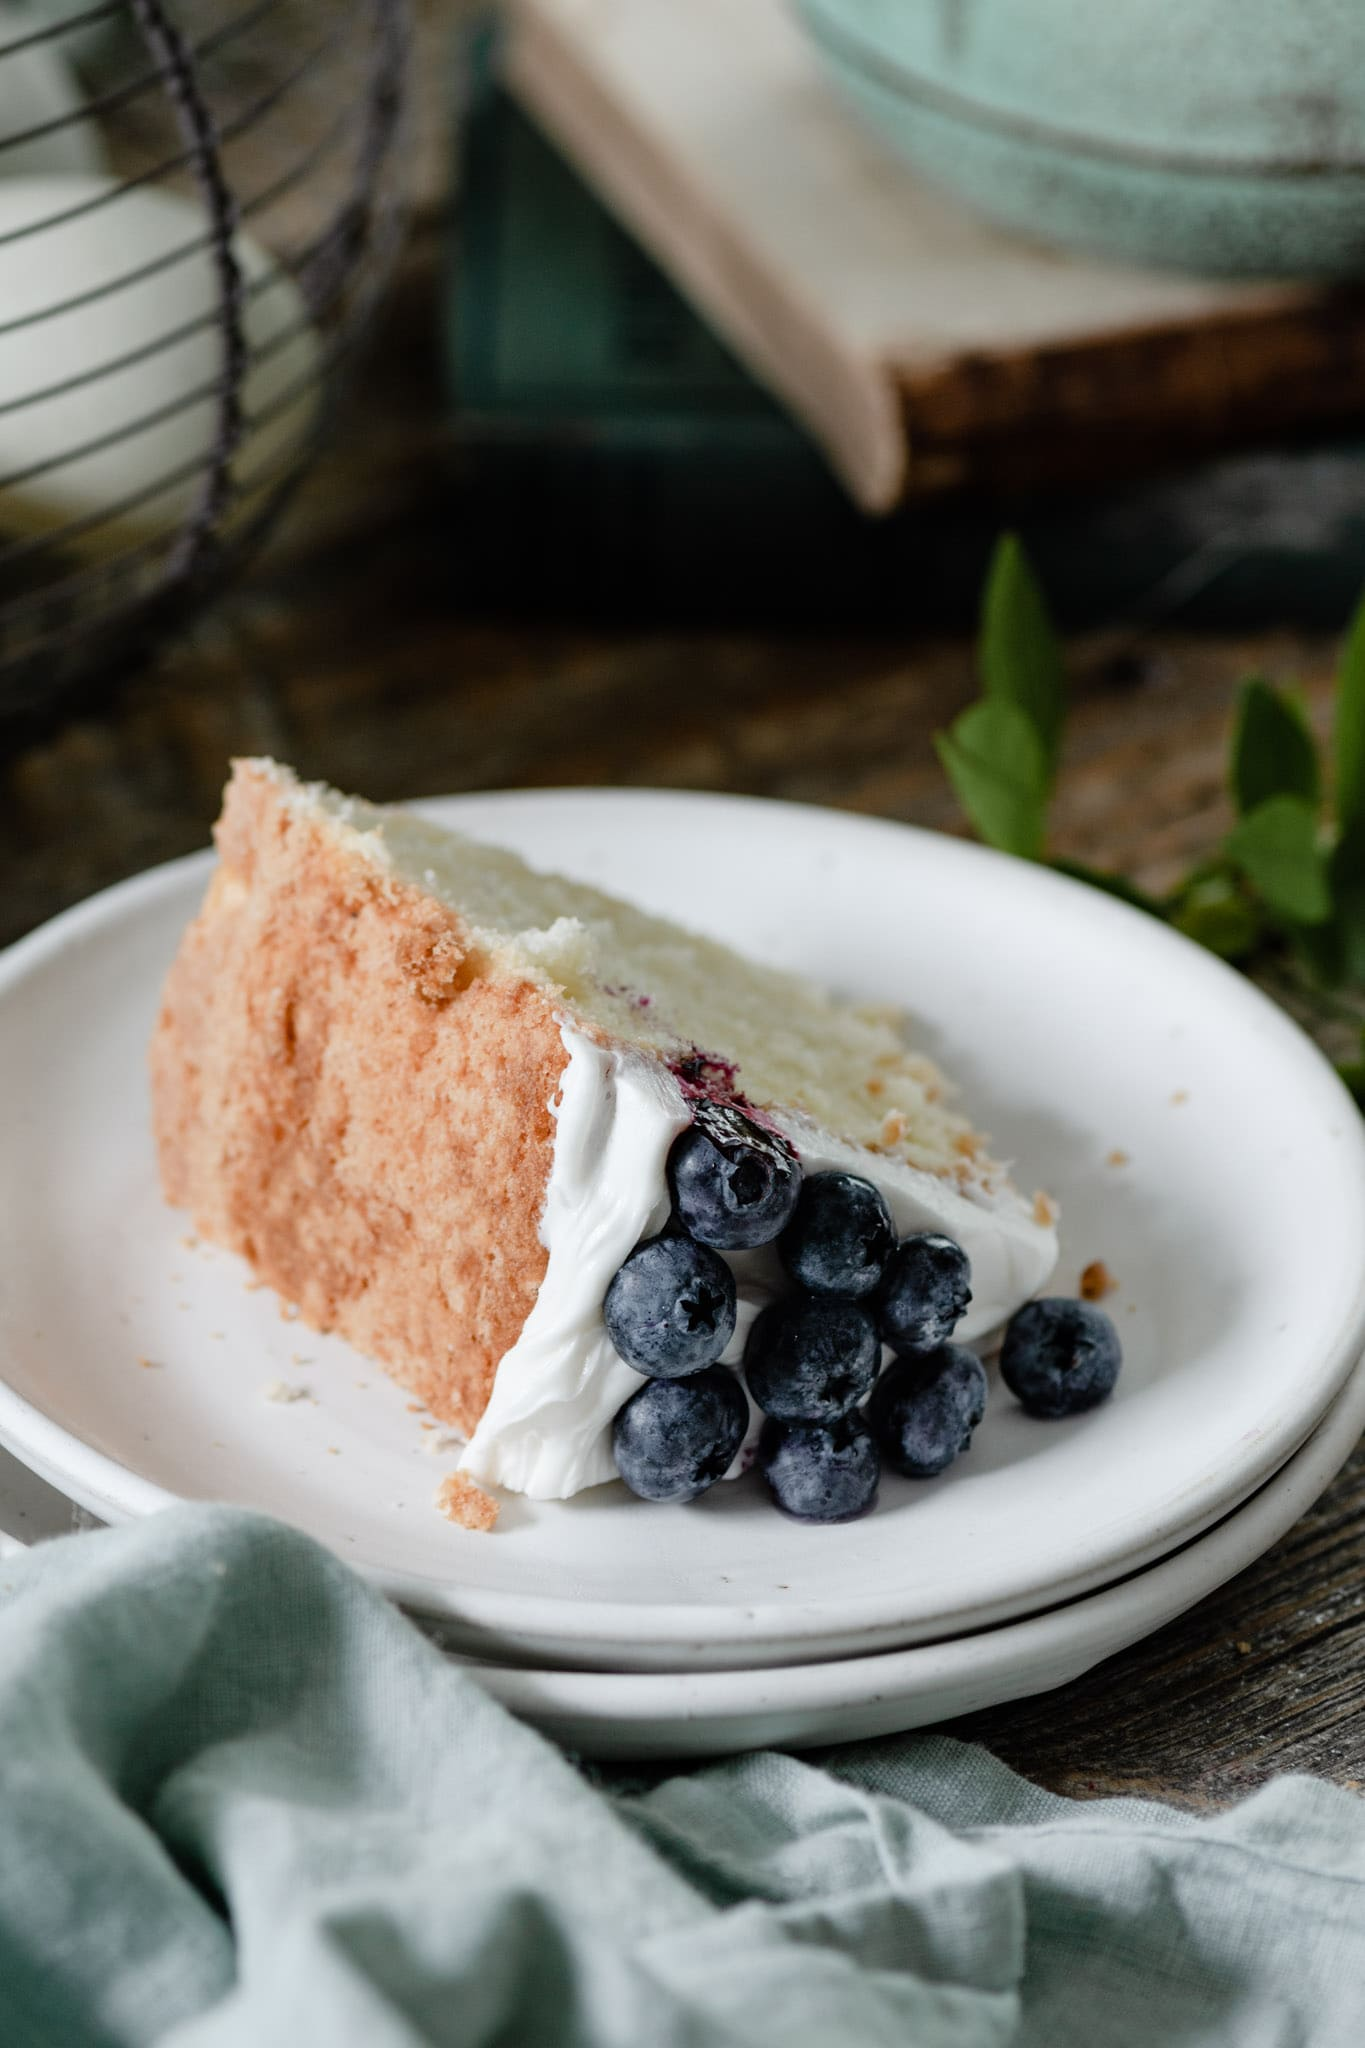 Slice of pound cake topped with blueberries.